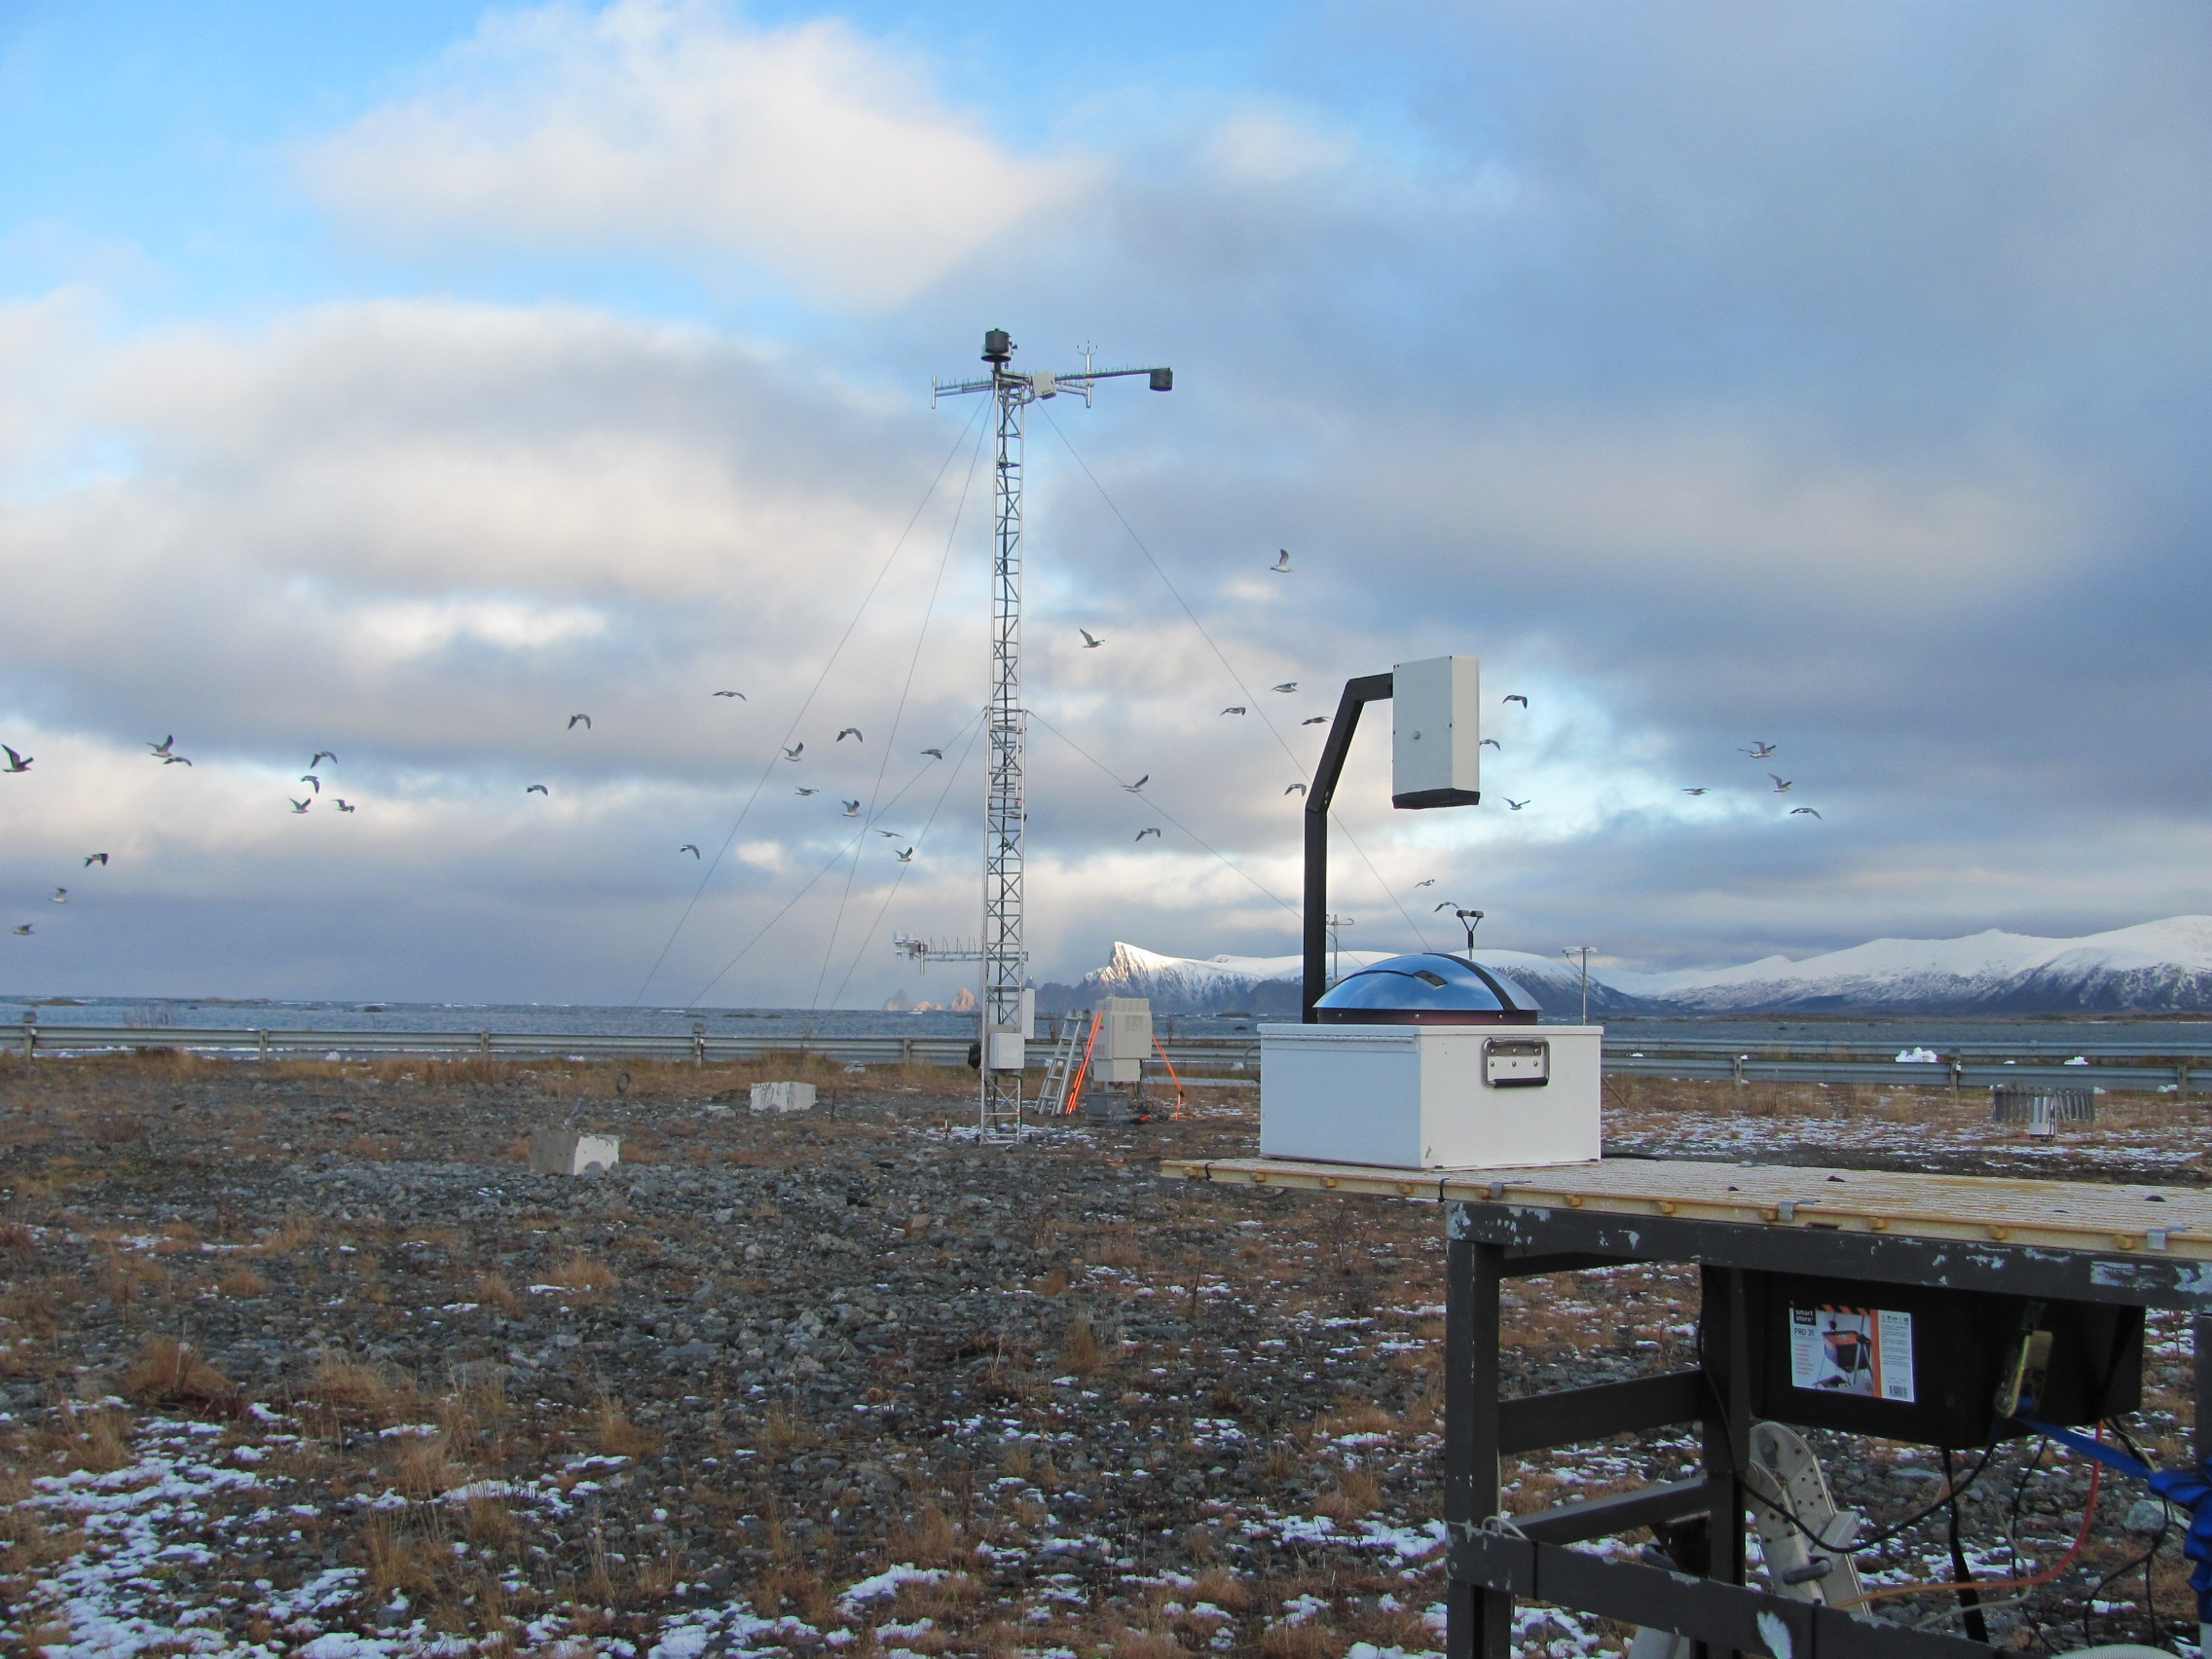 Total sky imager set up for COMBLE field campaign in Norway